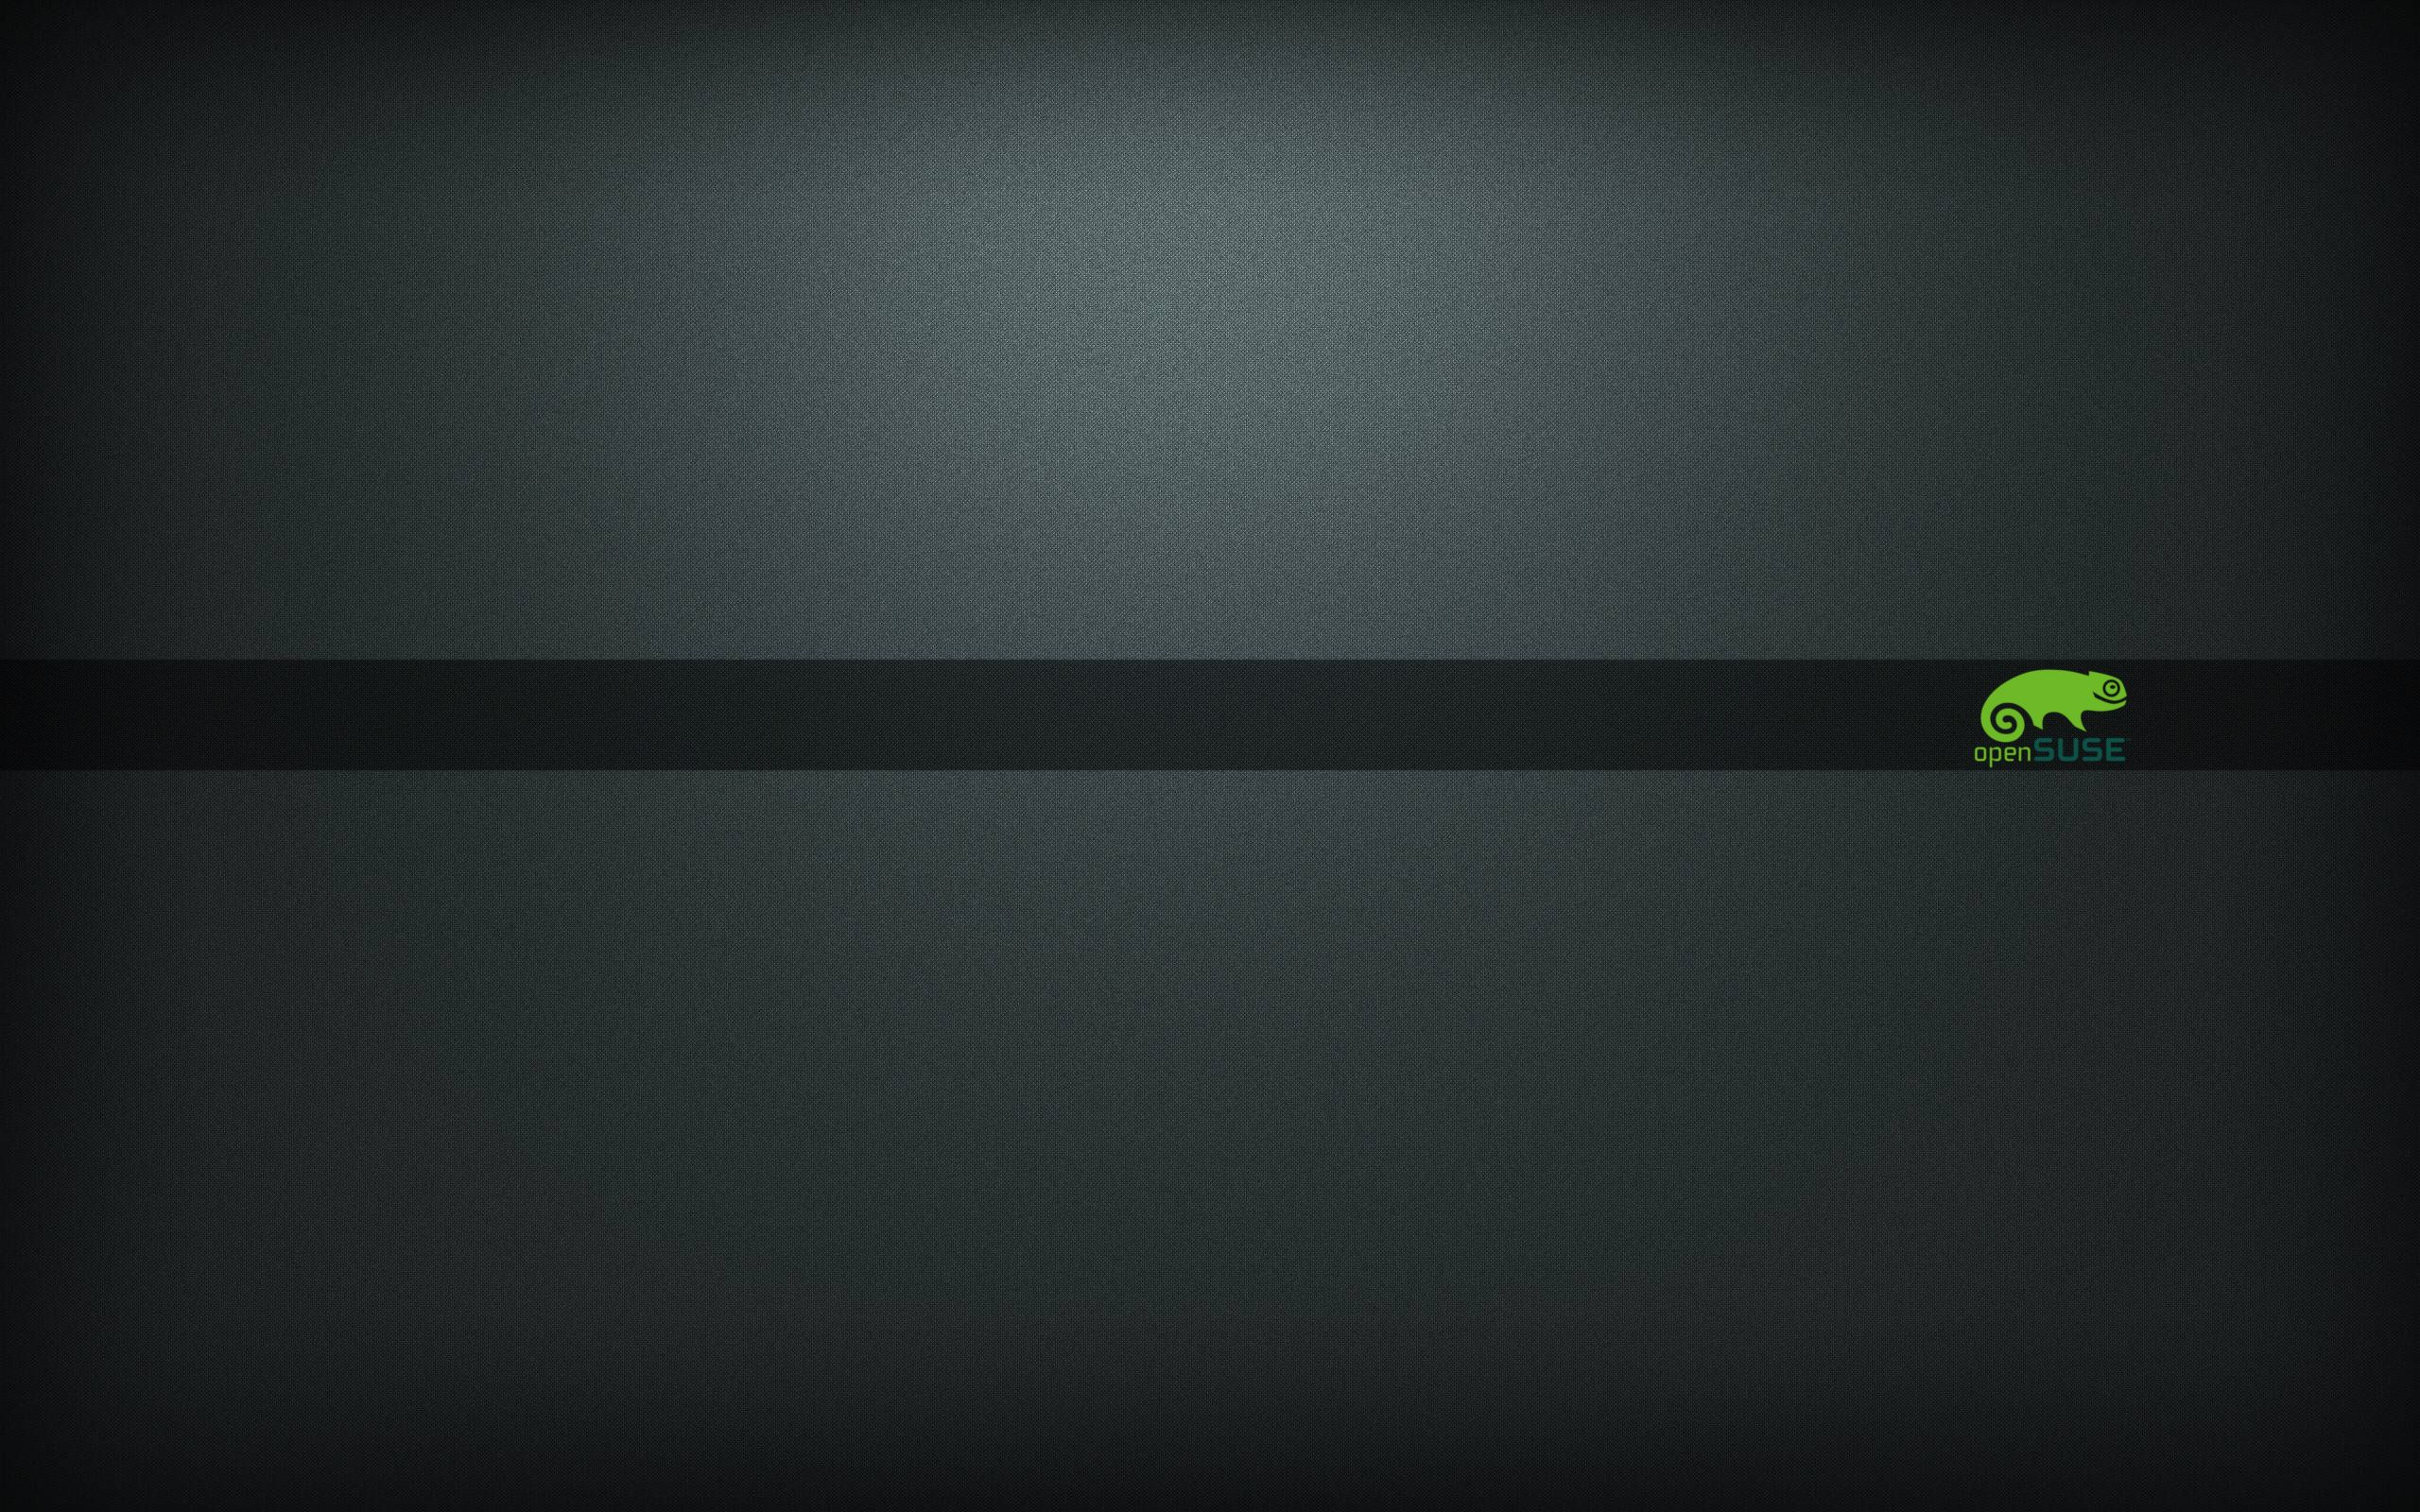 2560x1600 openSUSE:Wallpapers - openSUSE Wiki